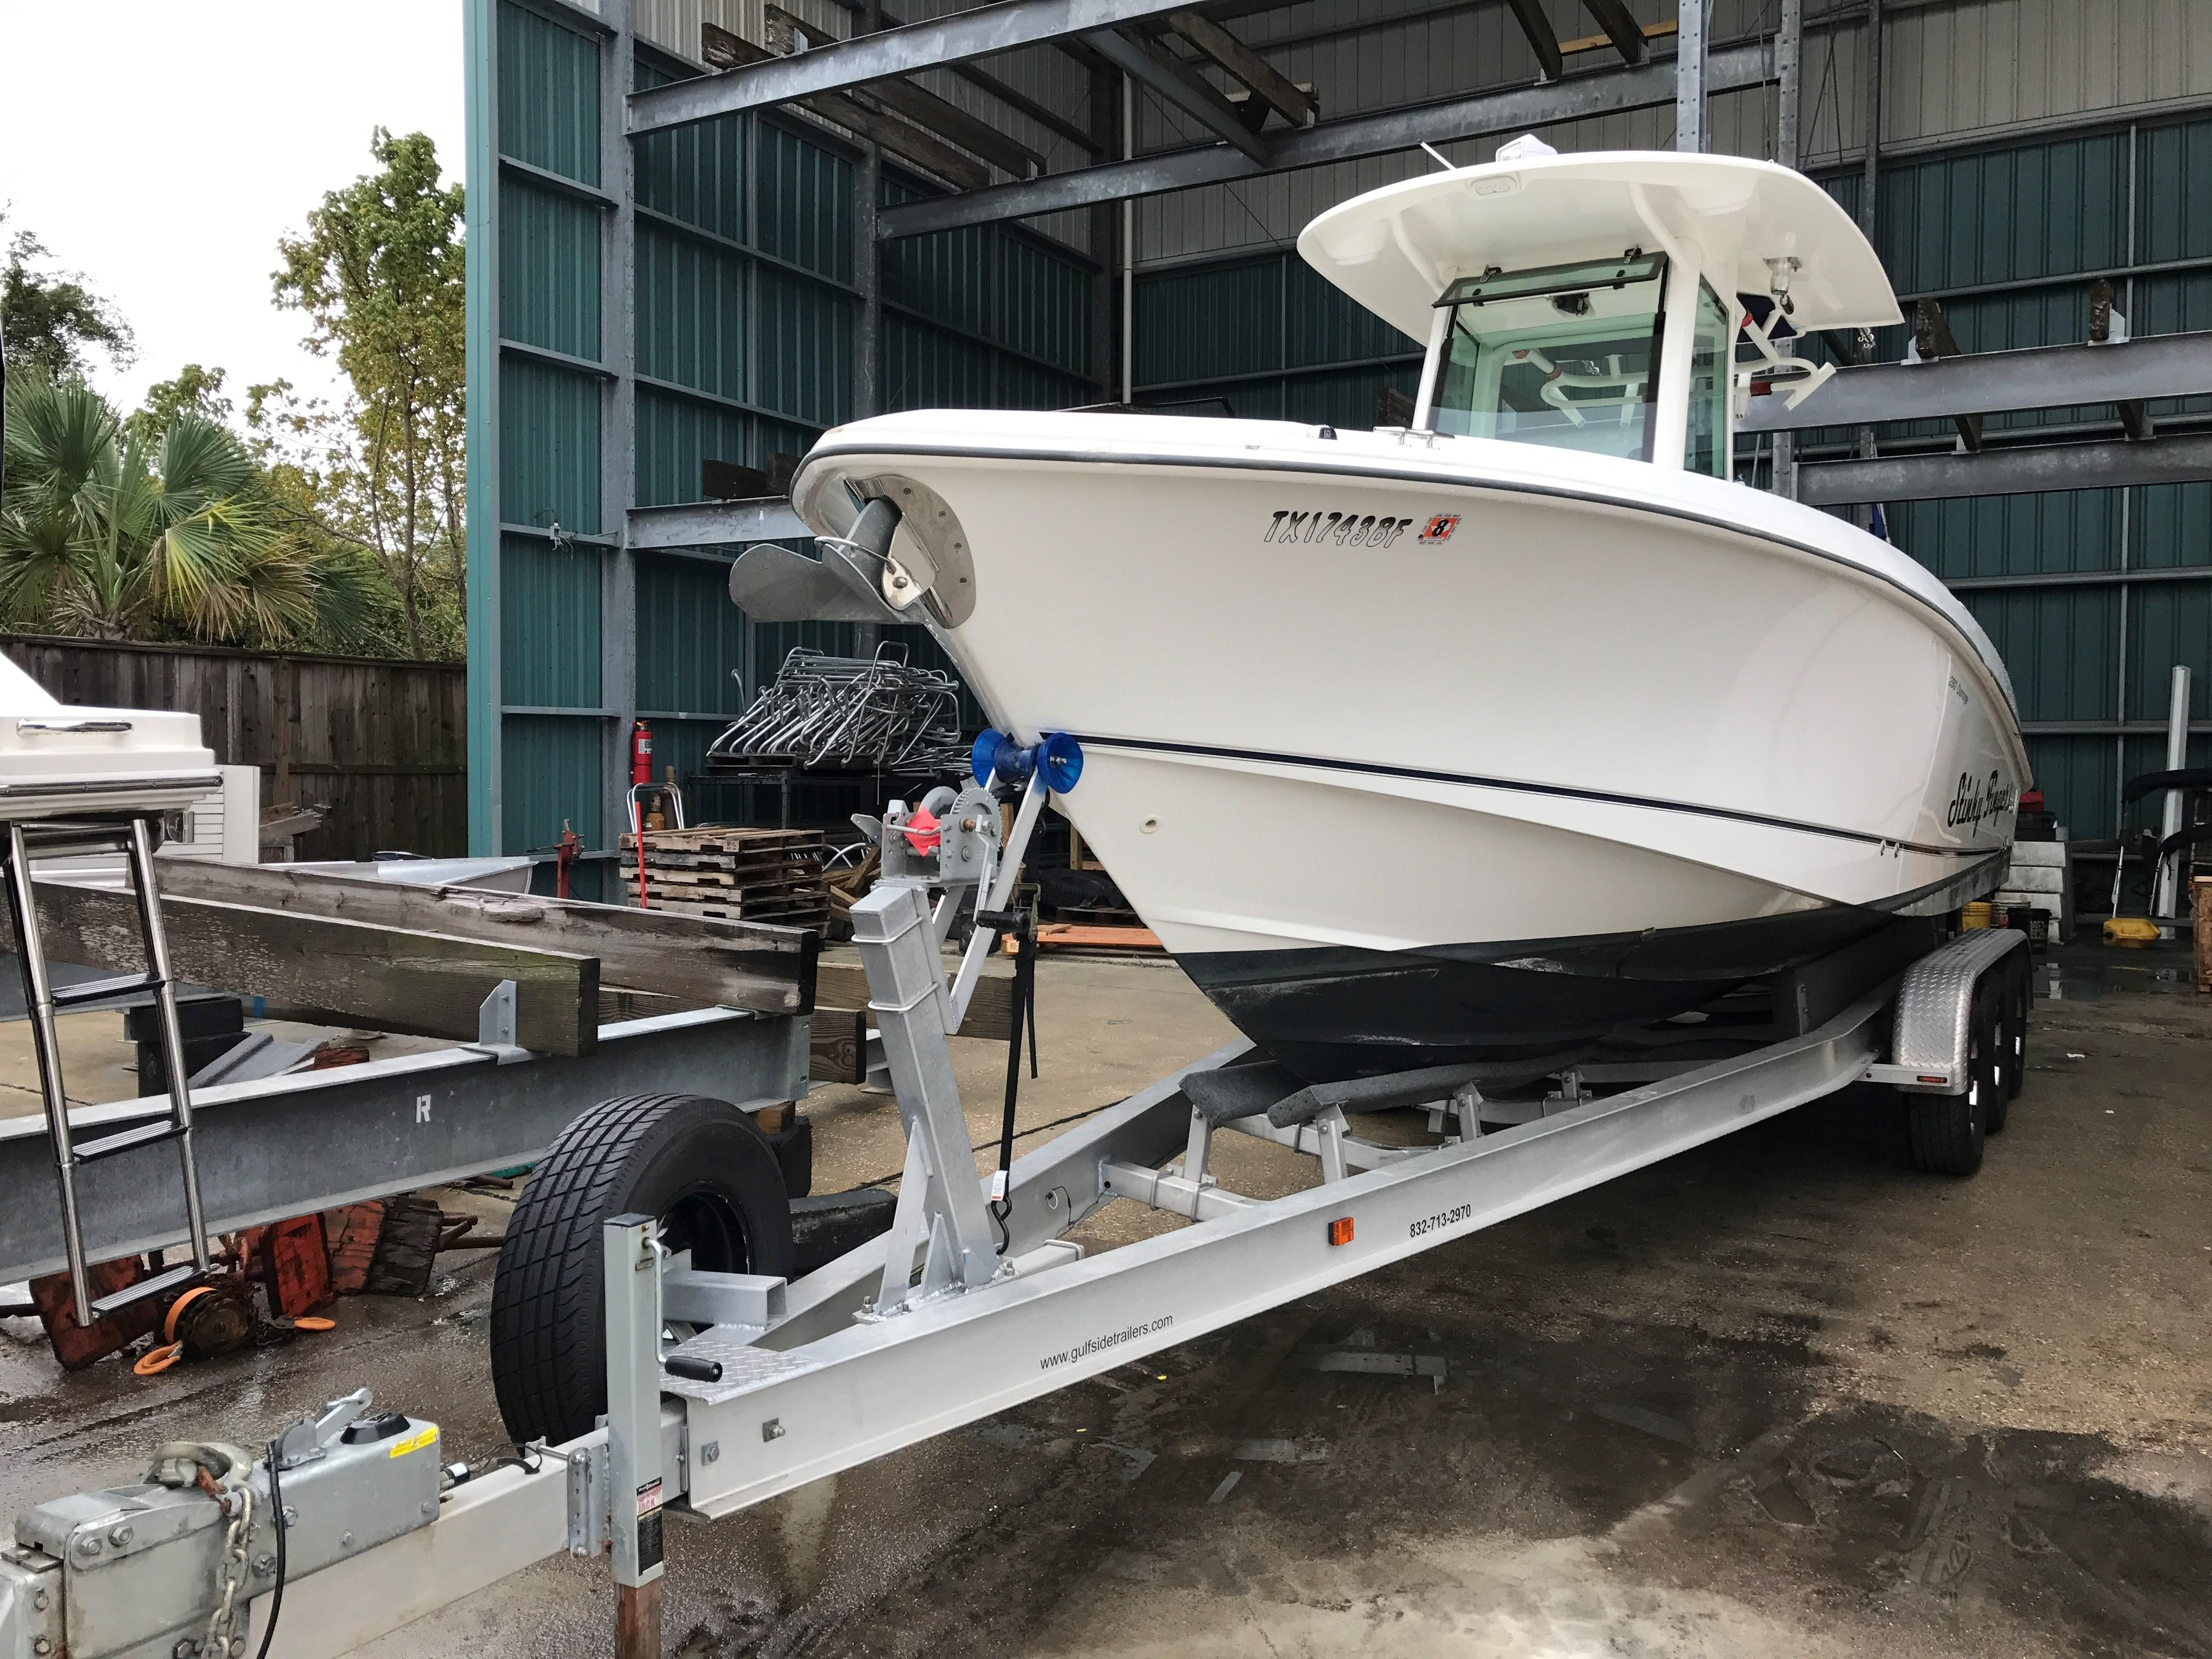 1970 Boston Whaler Outrage Related Keywords & Suggestions